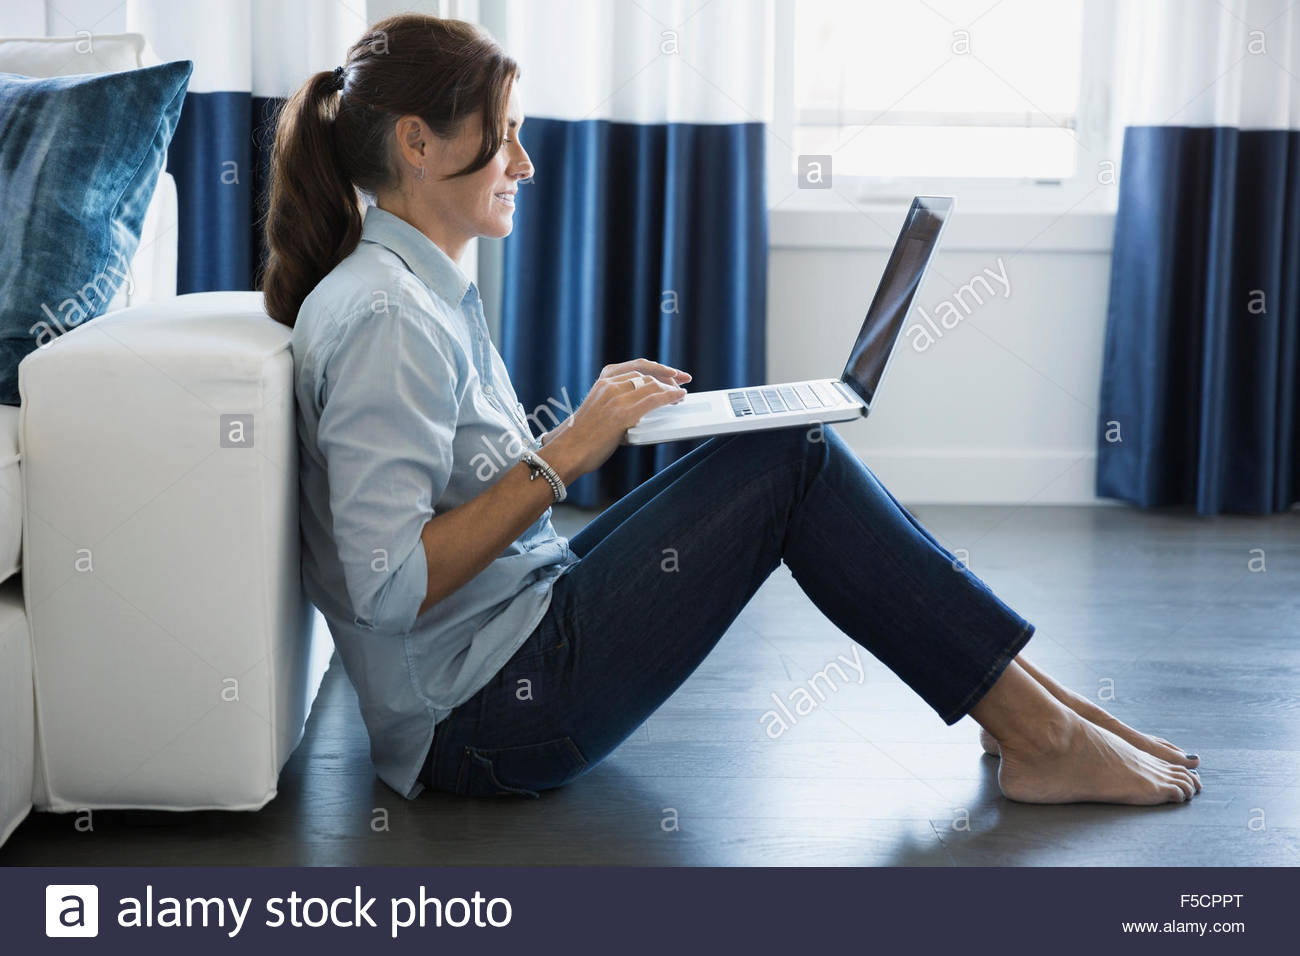 Barefoot Stock Photos Amp Barefoot Stock Images Alamy